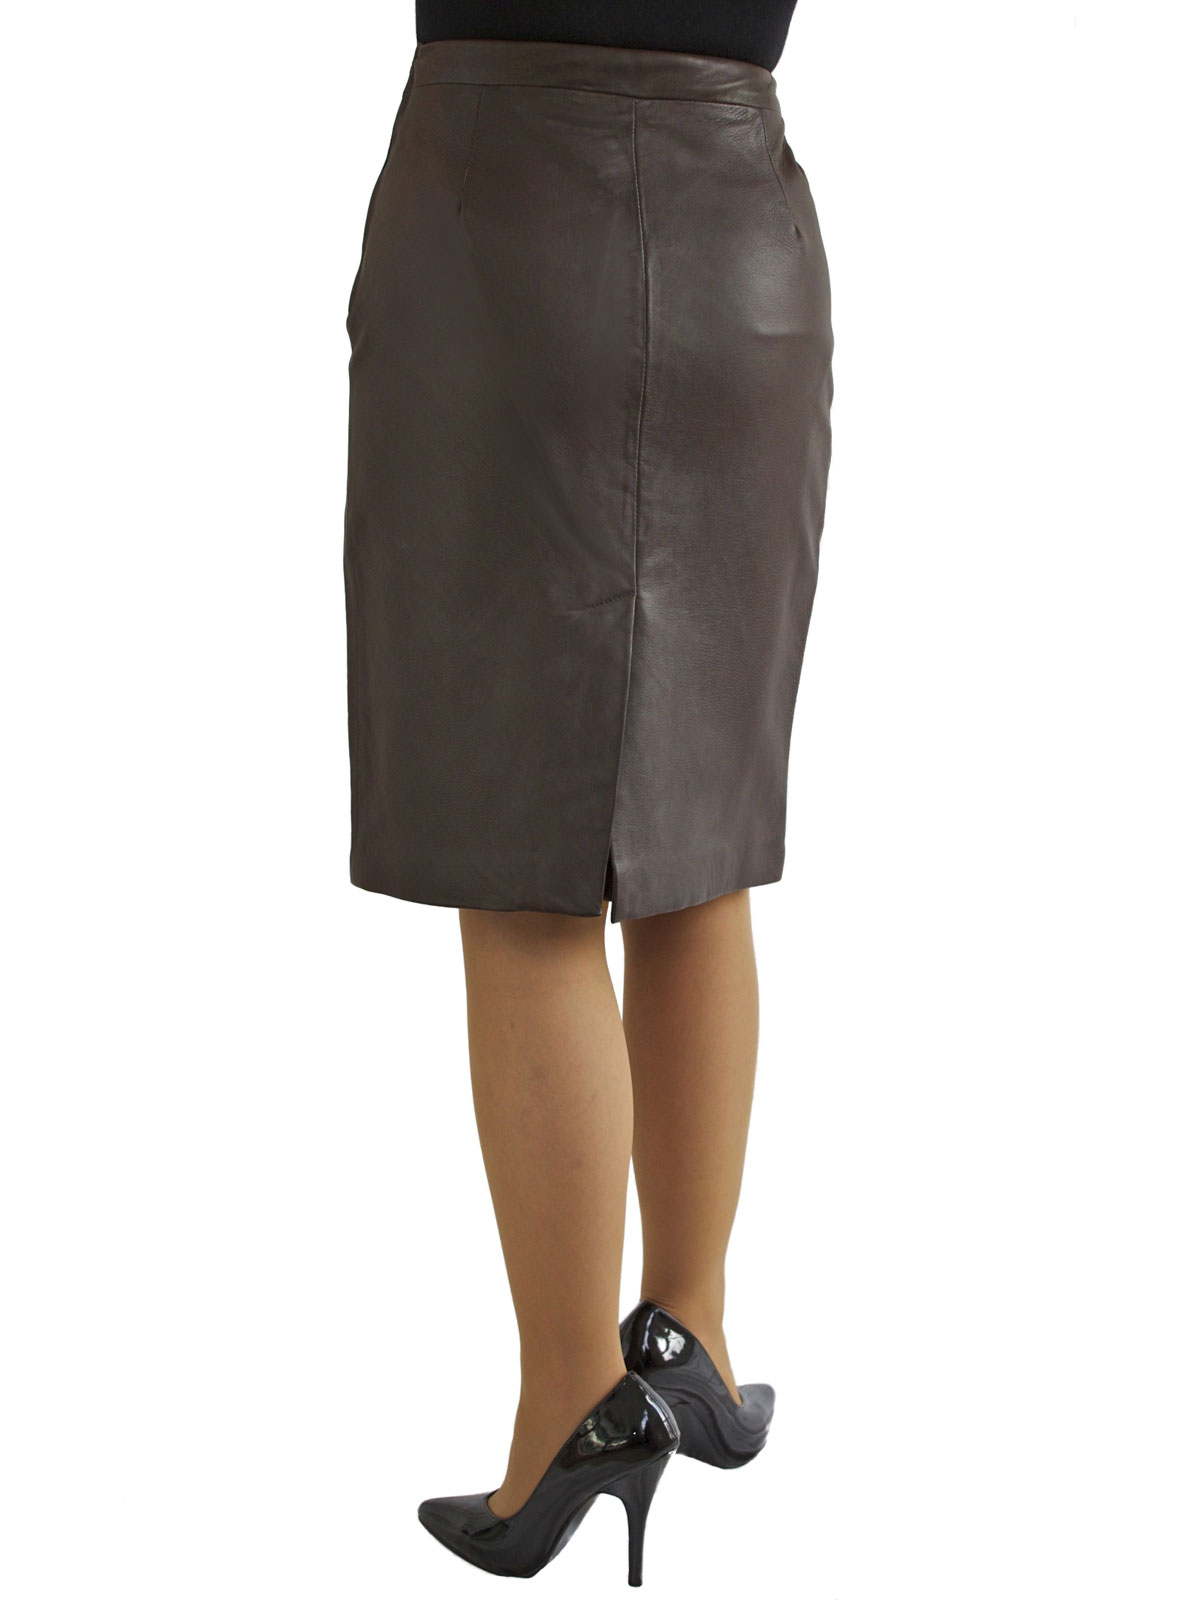 luxury leather pencil skirt with back split 2 colours